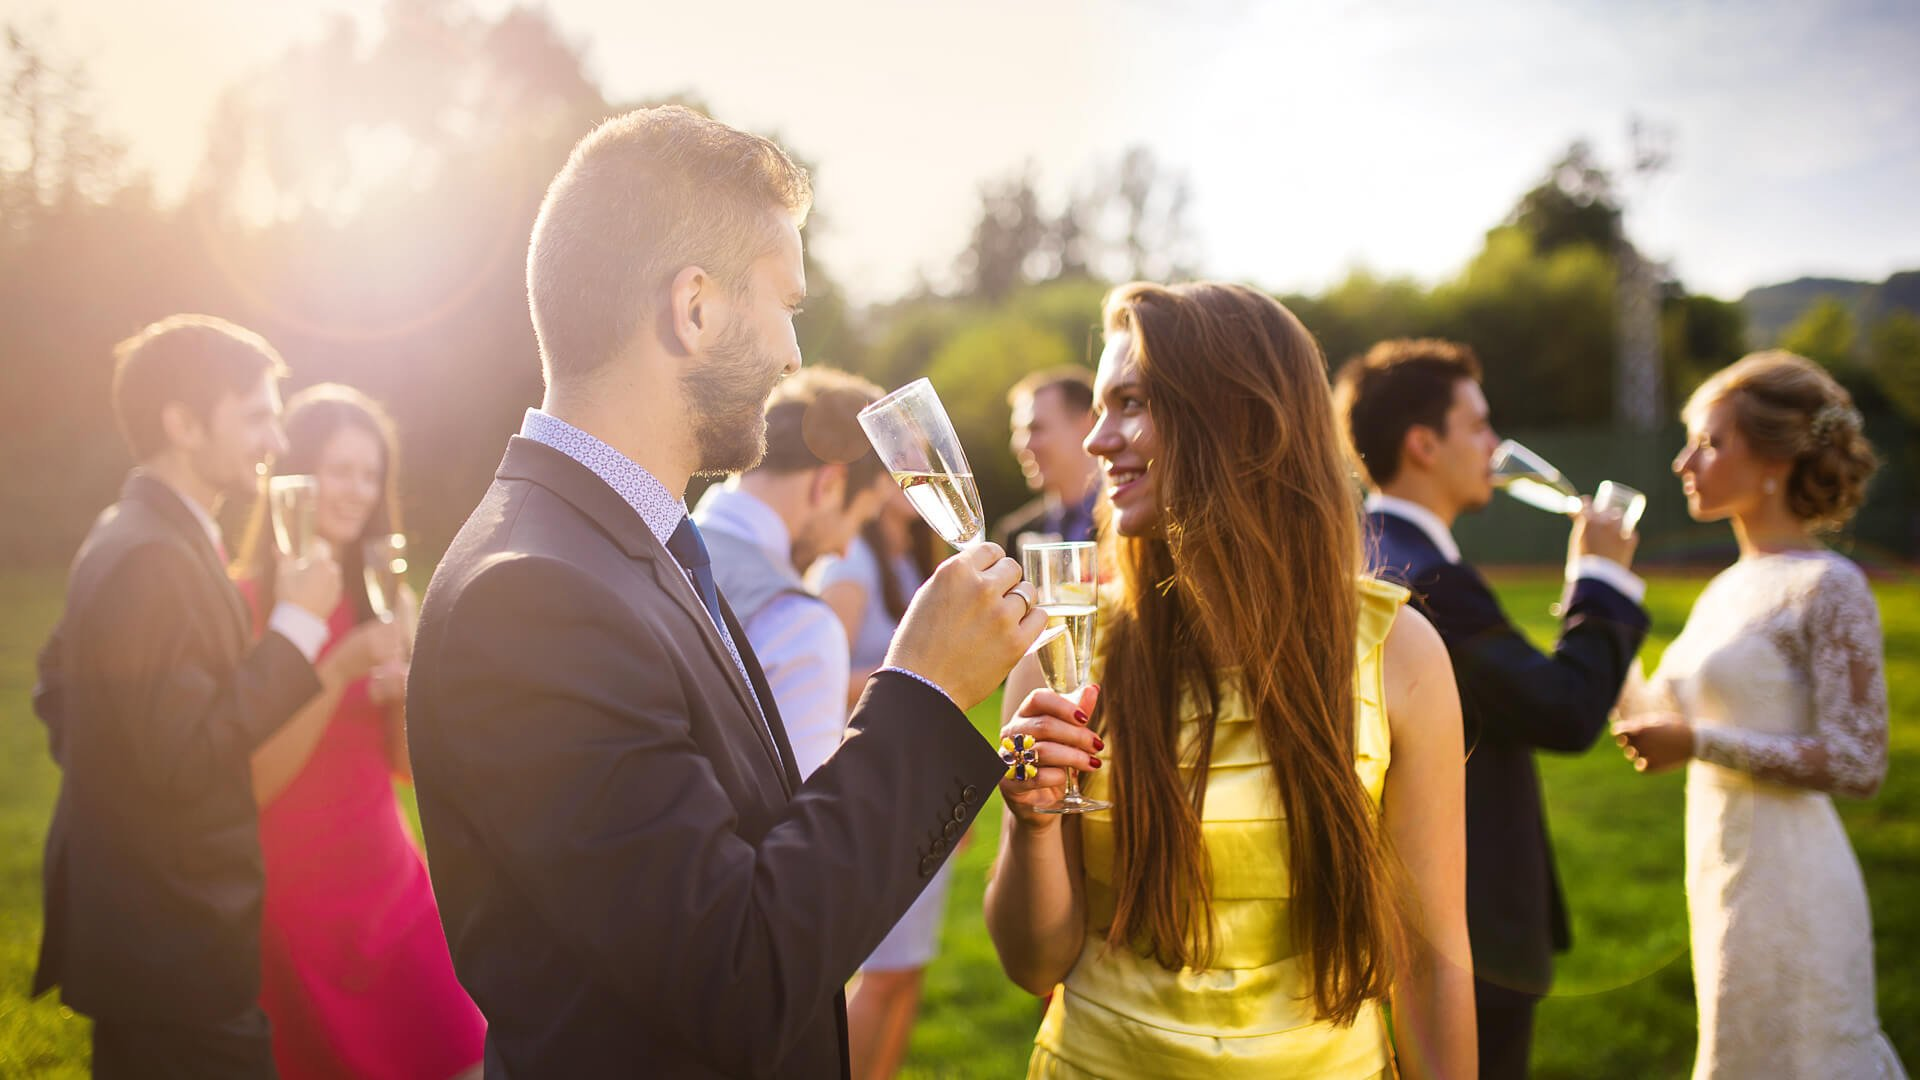 Wedding Season: All the Expenses You Face as a Guest and How To Spend Less